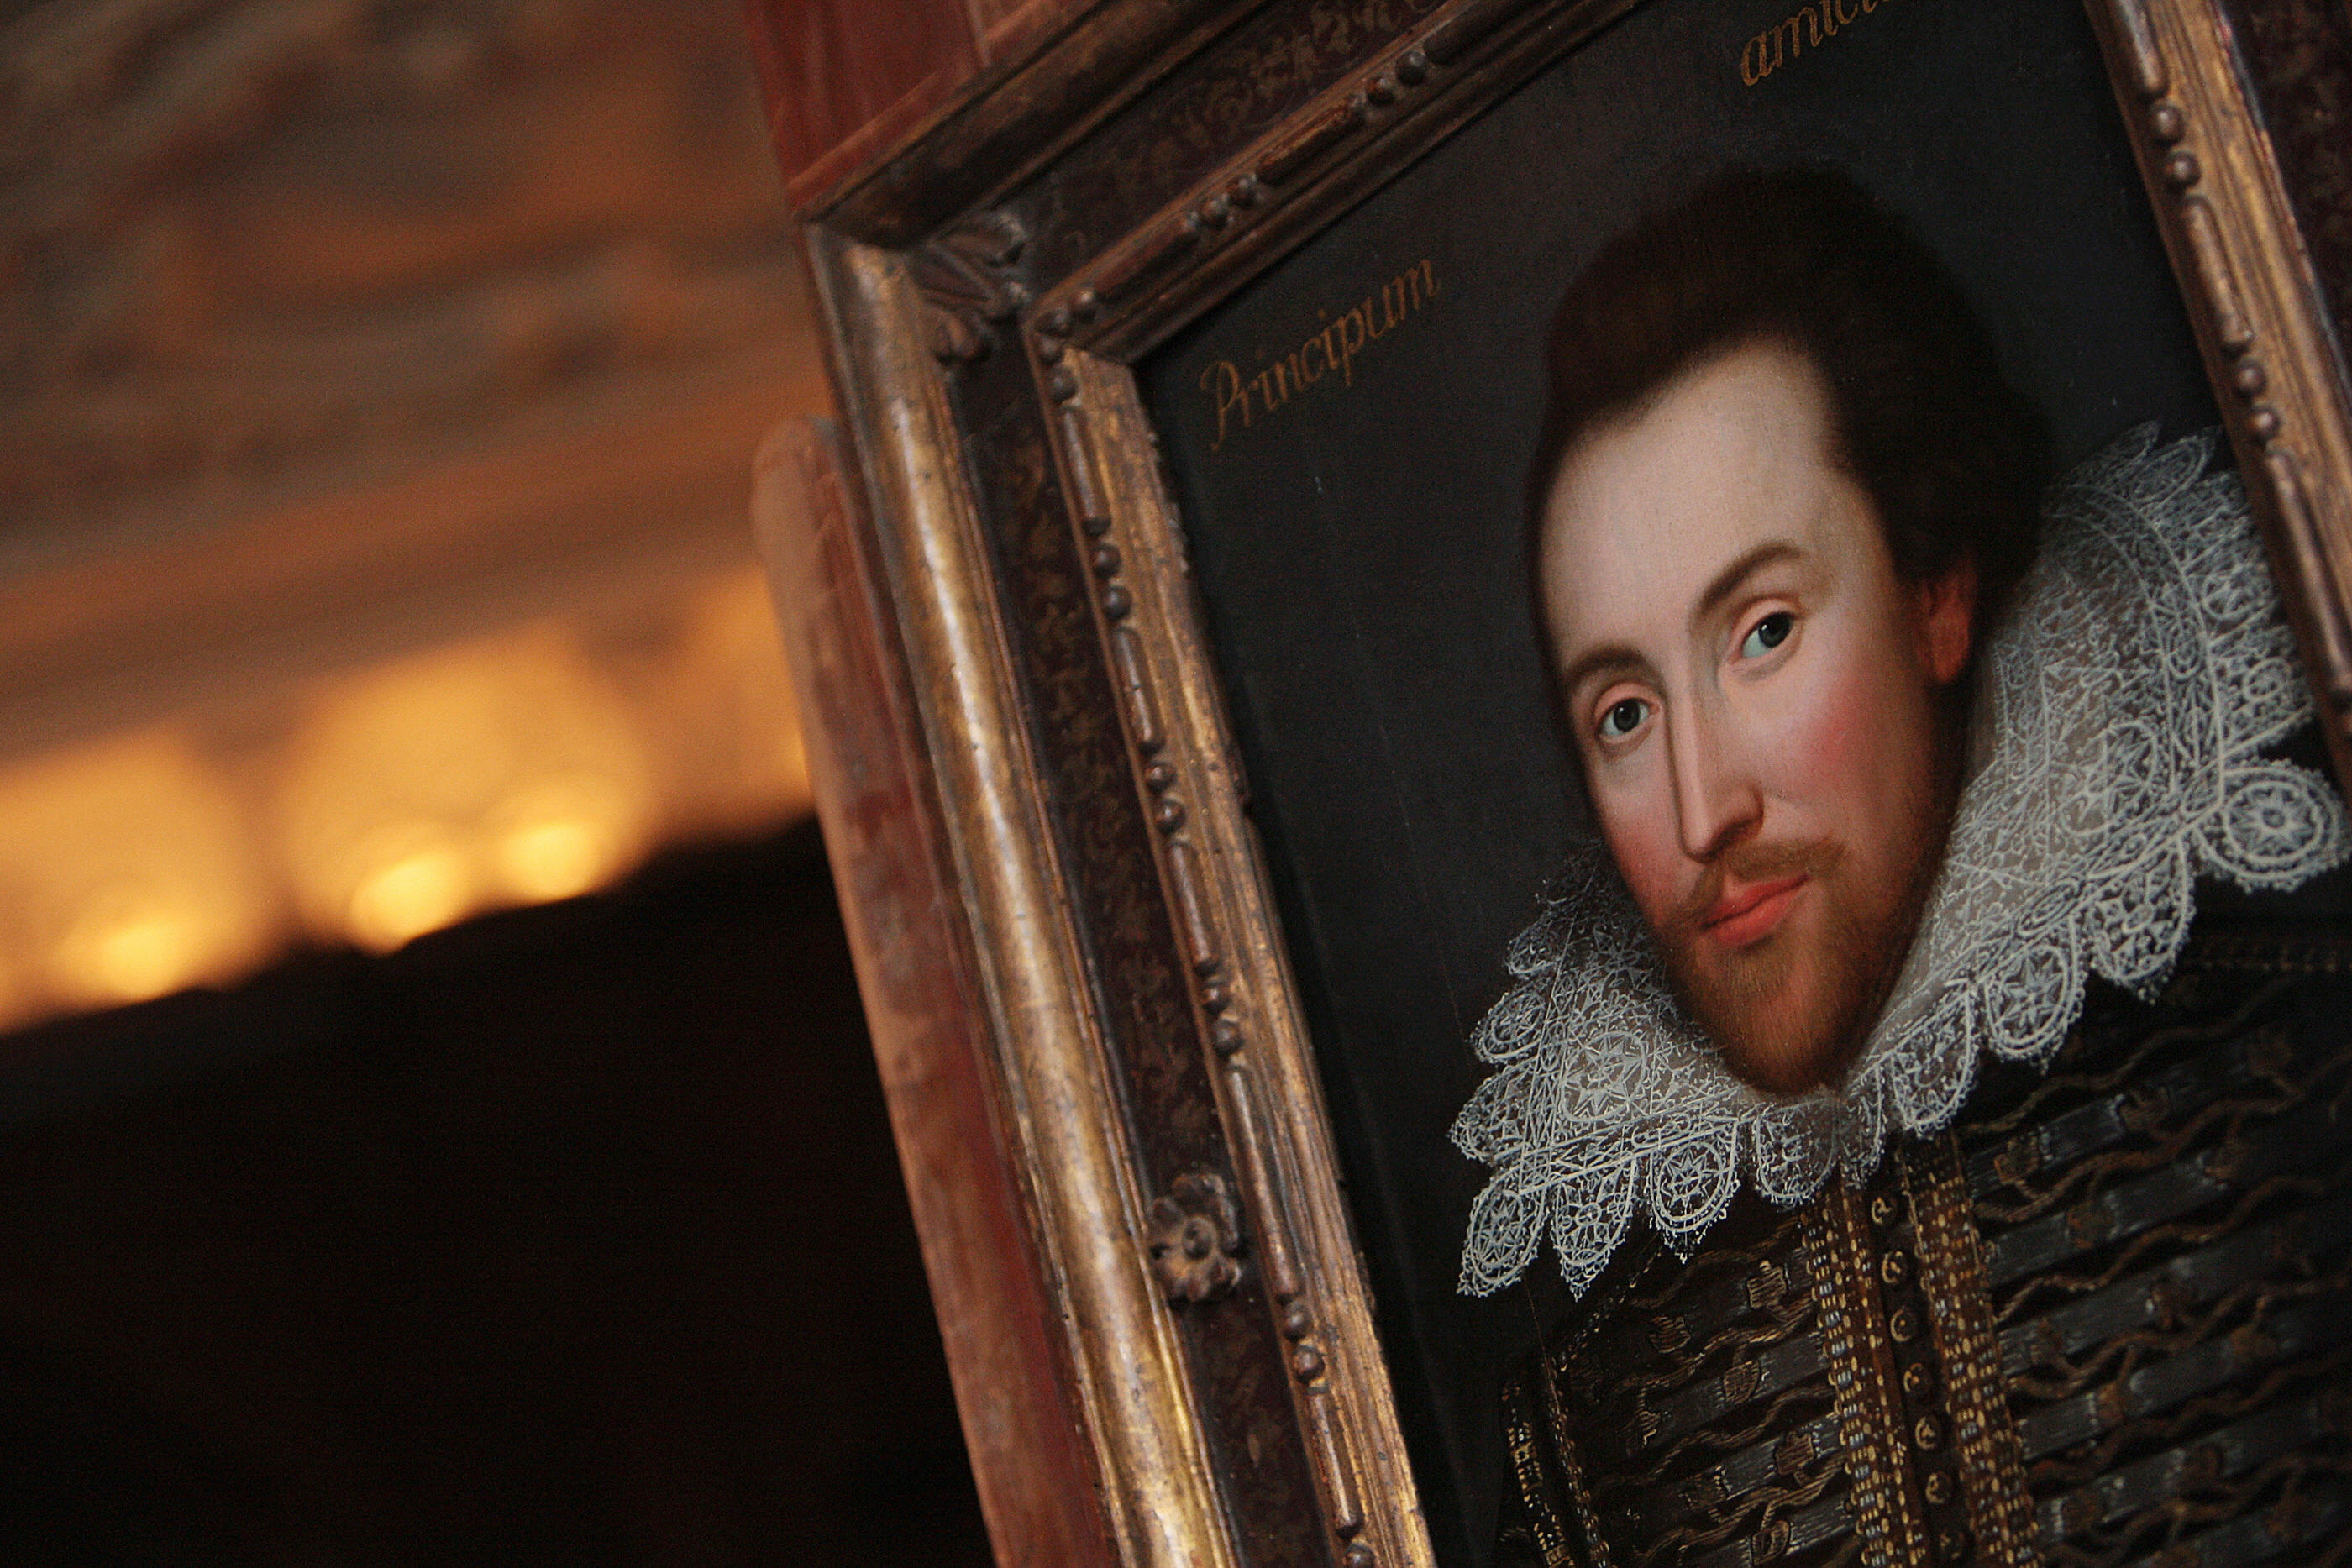 william shakespeare born apr 23 1564 com a portrait of william shakespeare is pictured in london on 9 2009